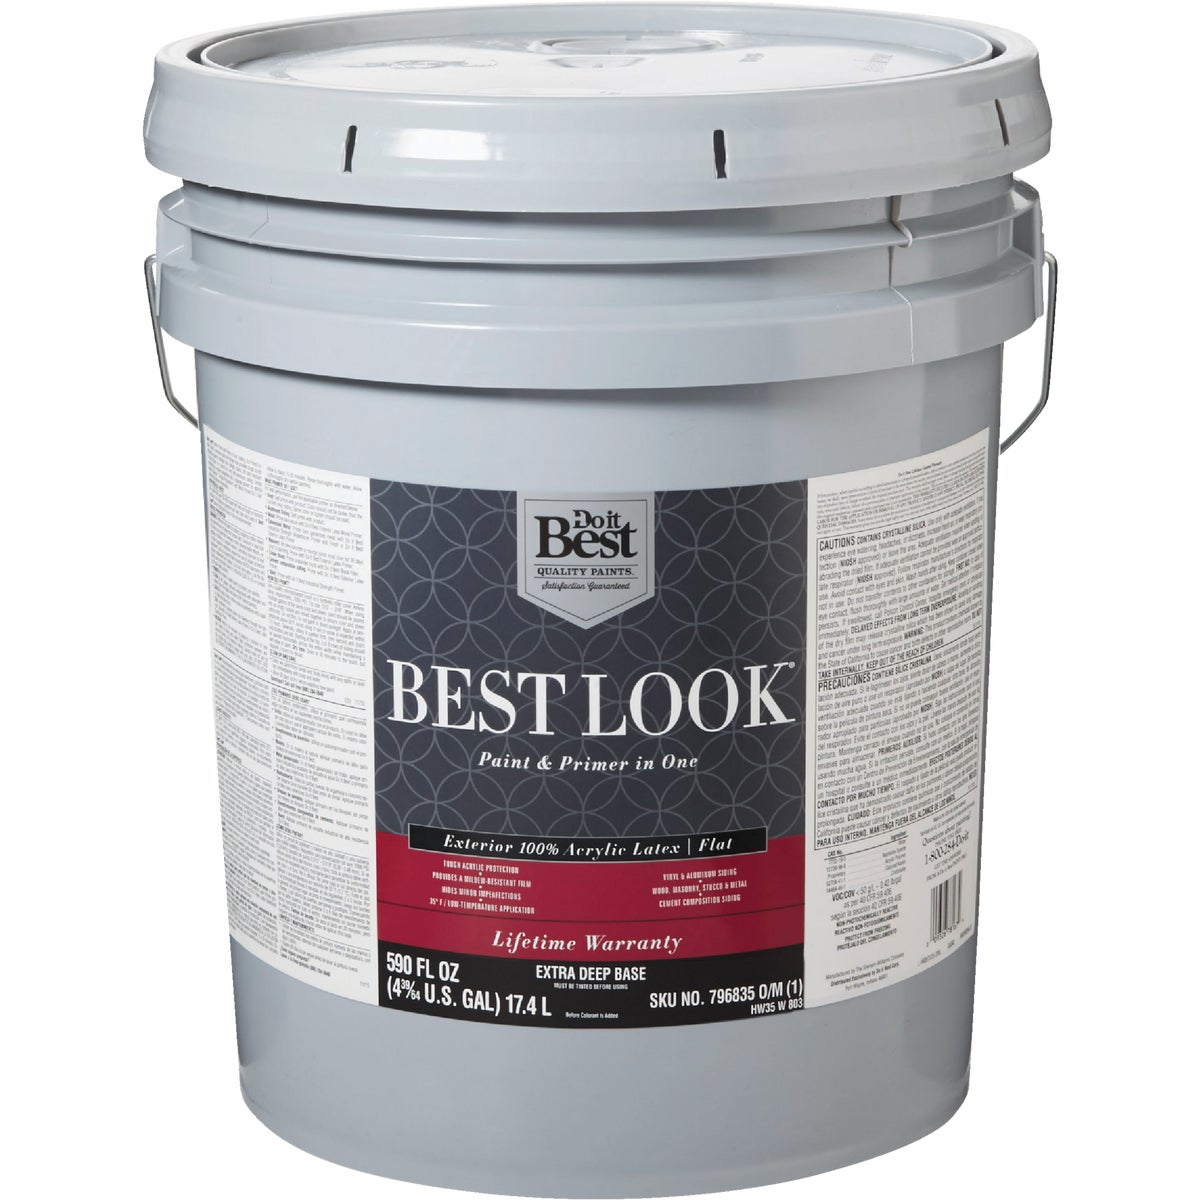 EXT FLT EX DEEP BS PAINT - HW35W0803-20 by Do it Best